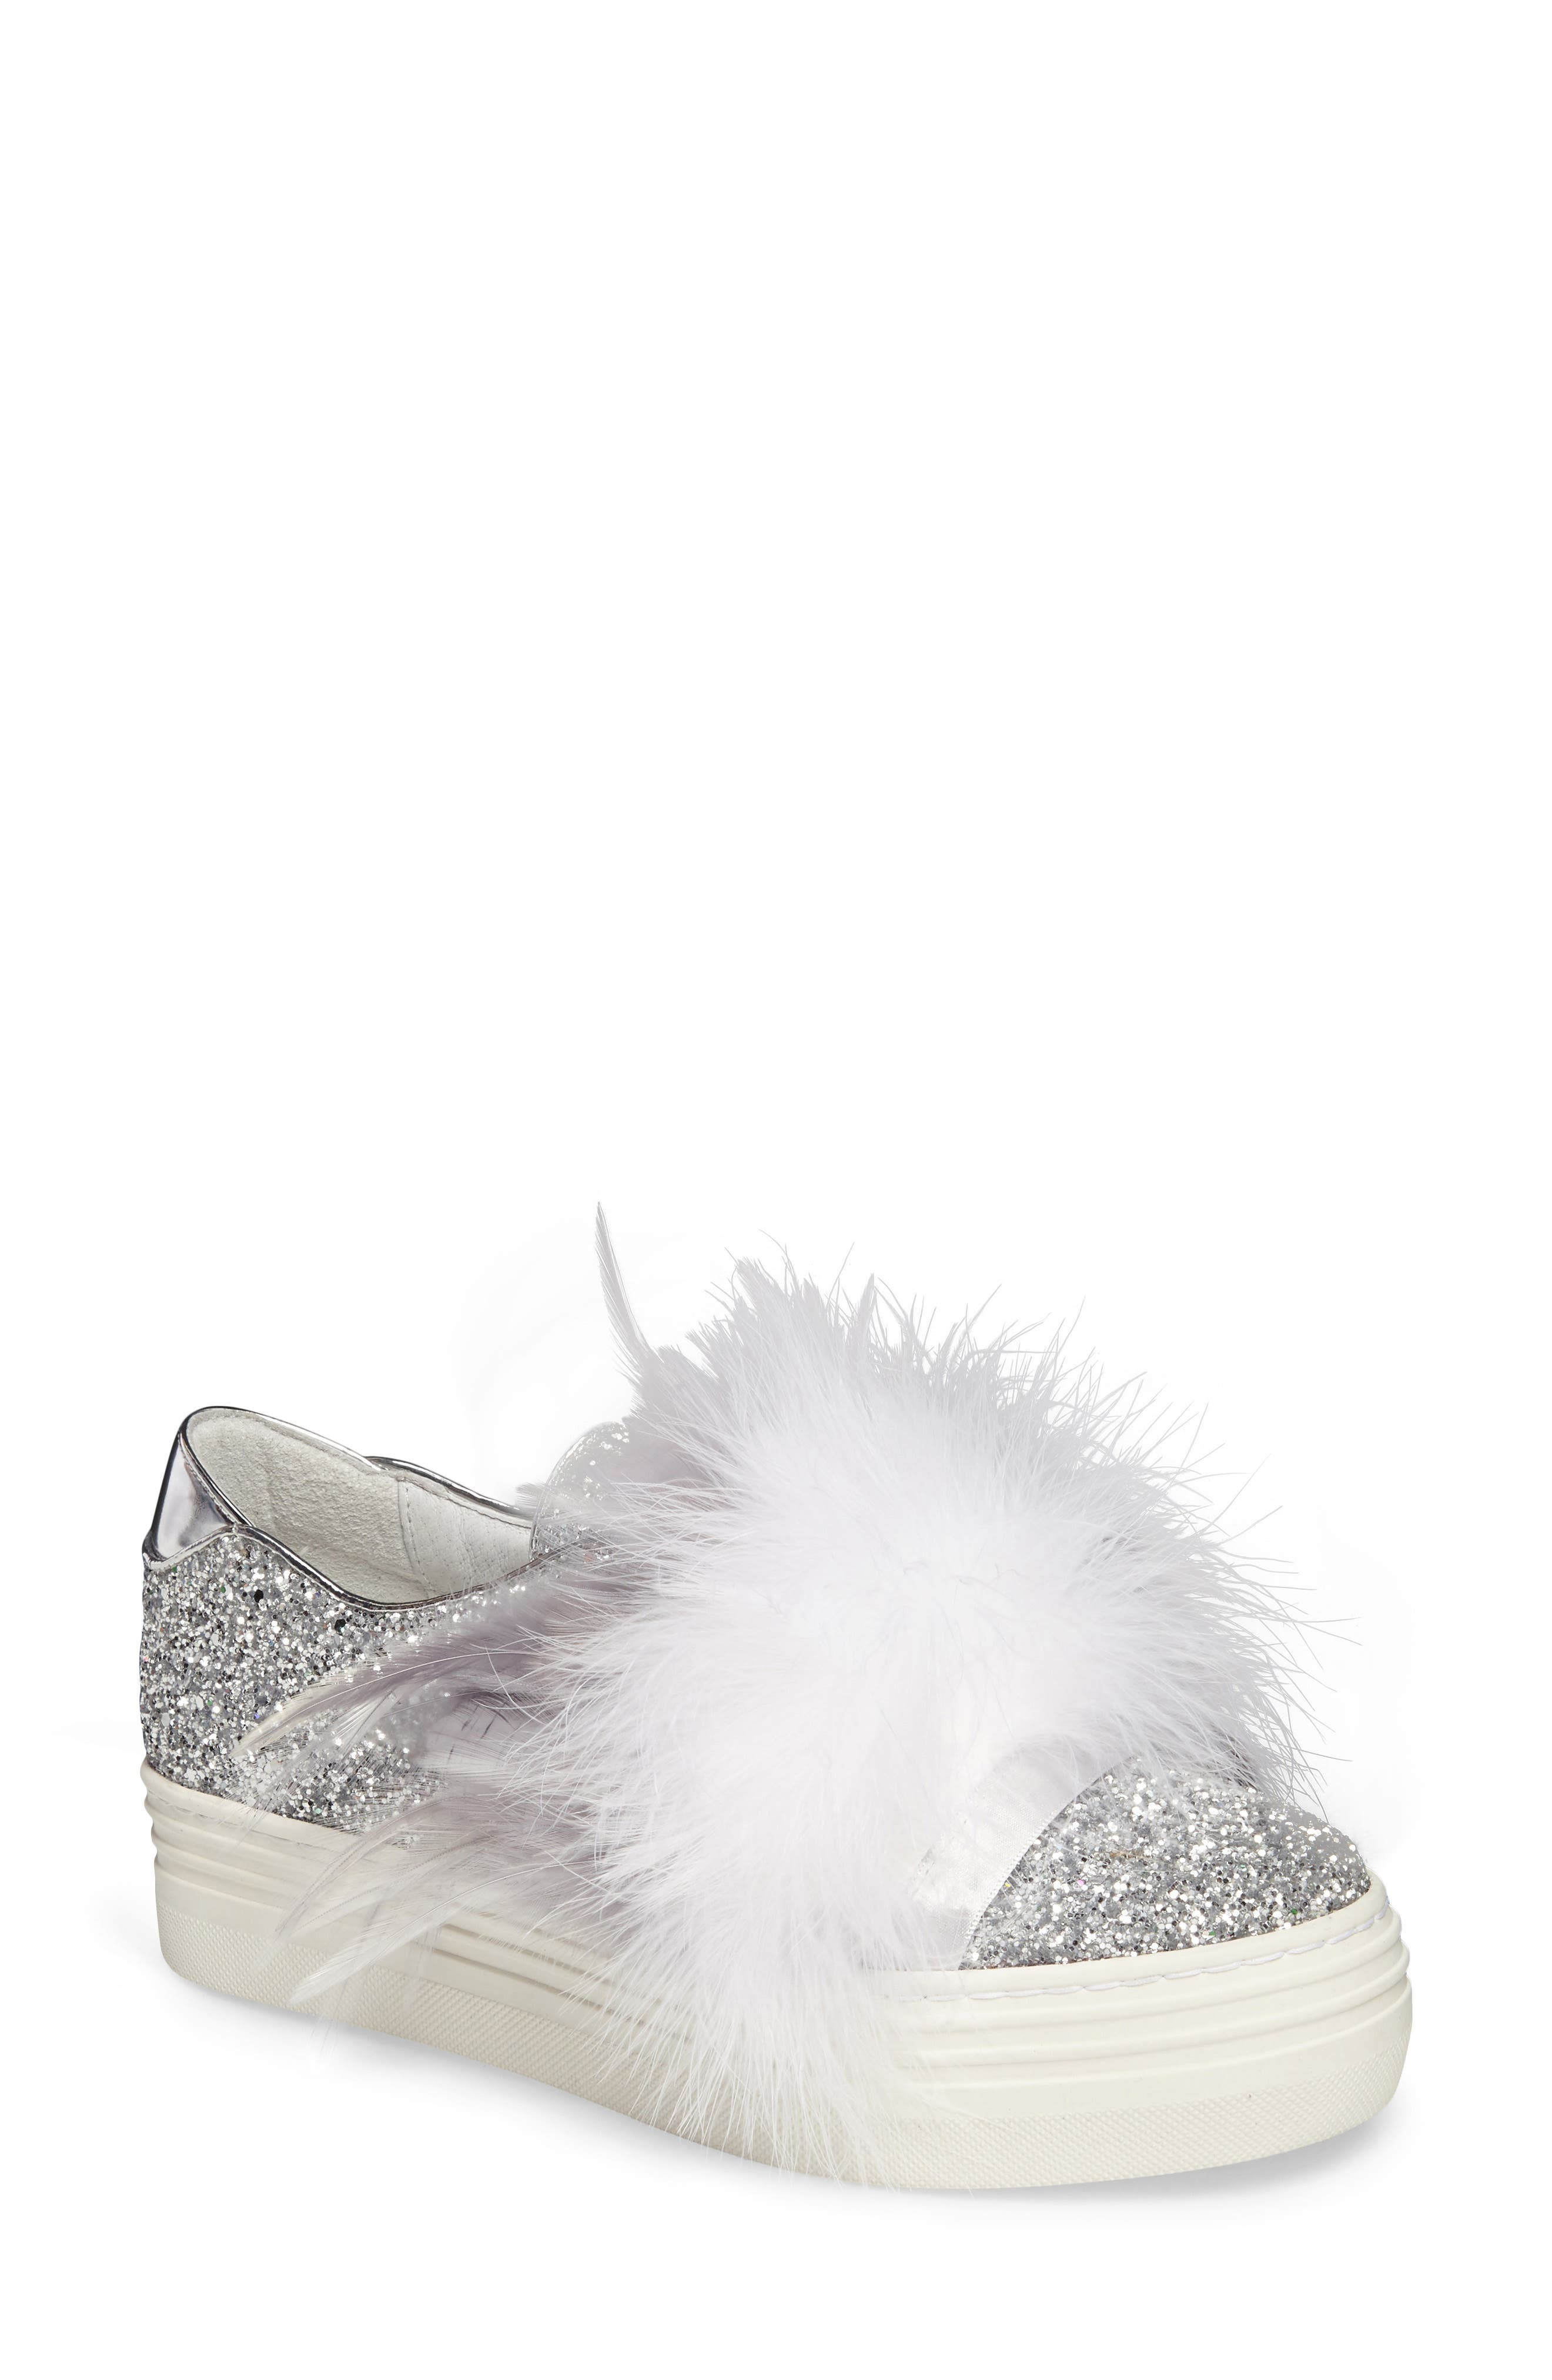 Kate Feathered Slip-On Sneaker,                         Main,                         color, 020